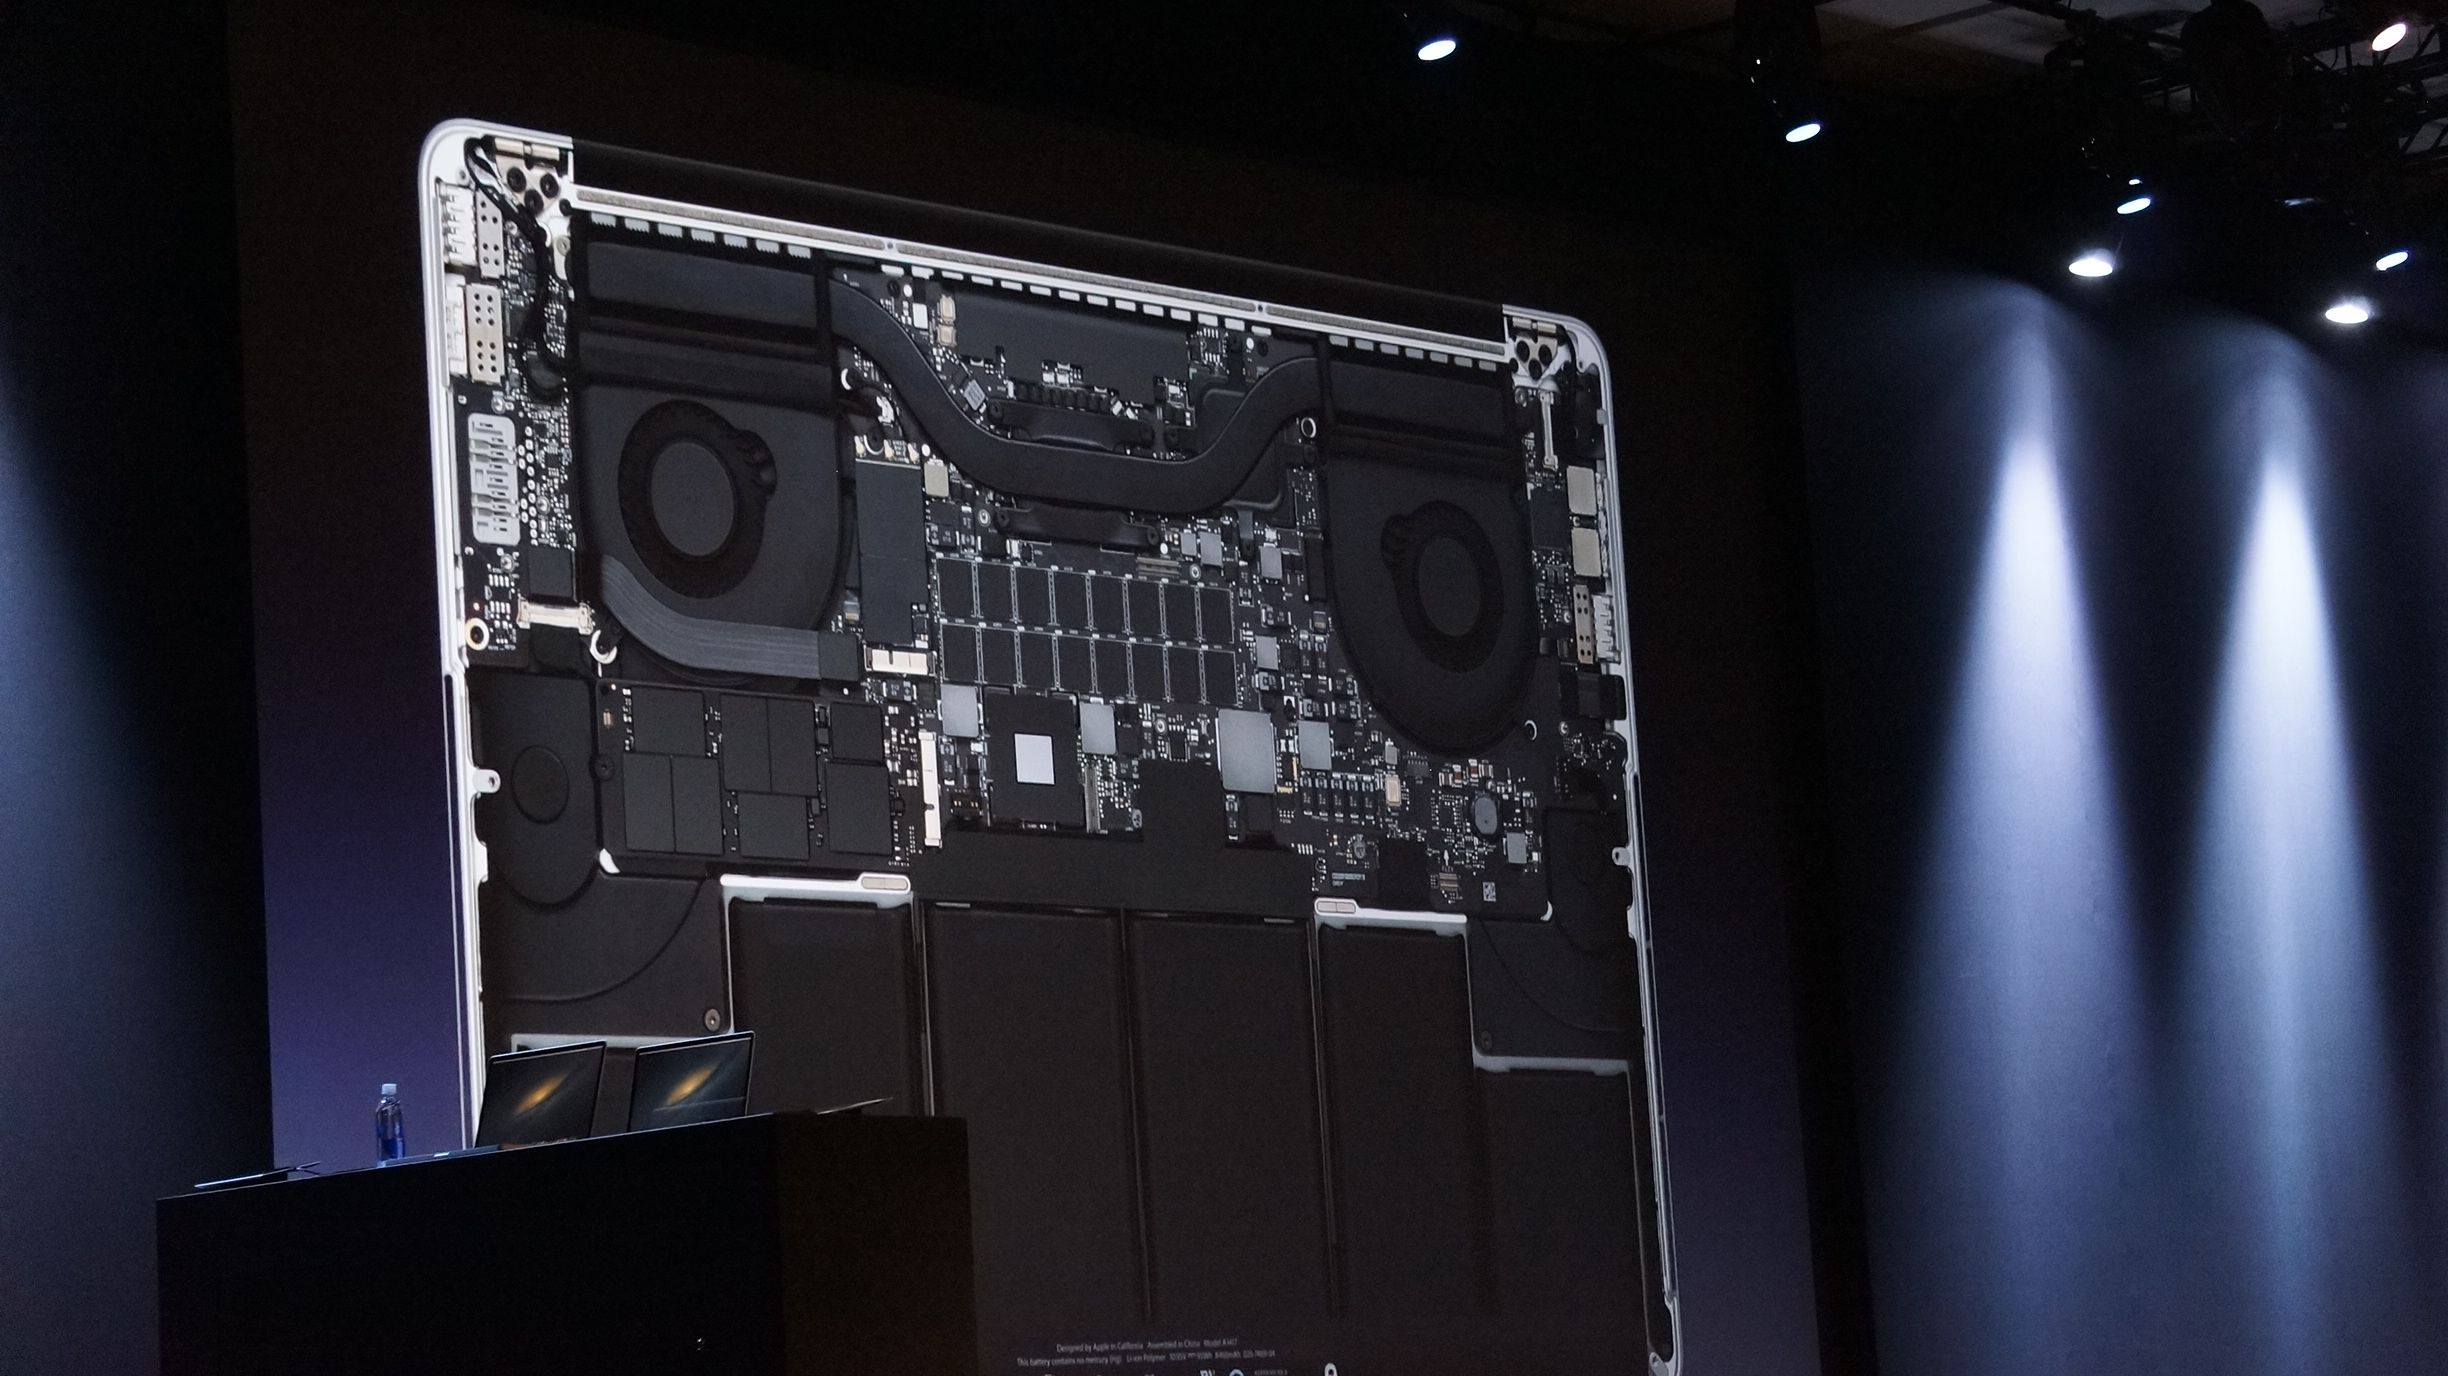 Apple WWDC 2012 MacBook Pro Retina Display motherboard 2